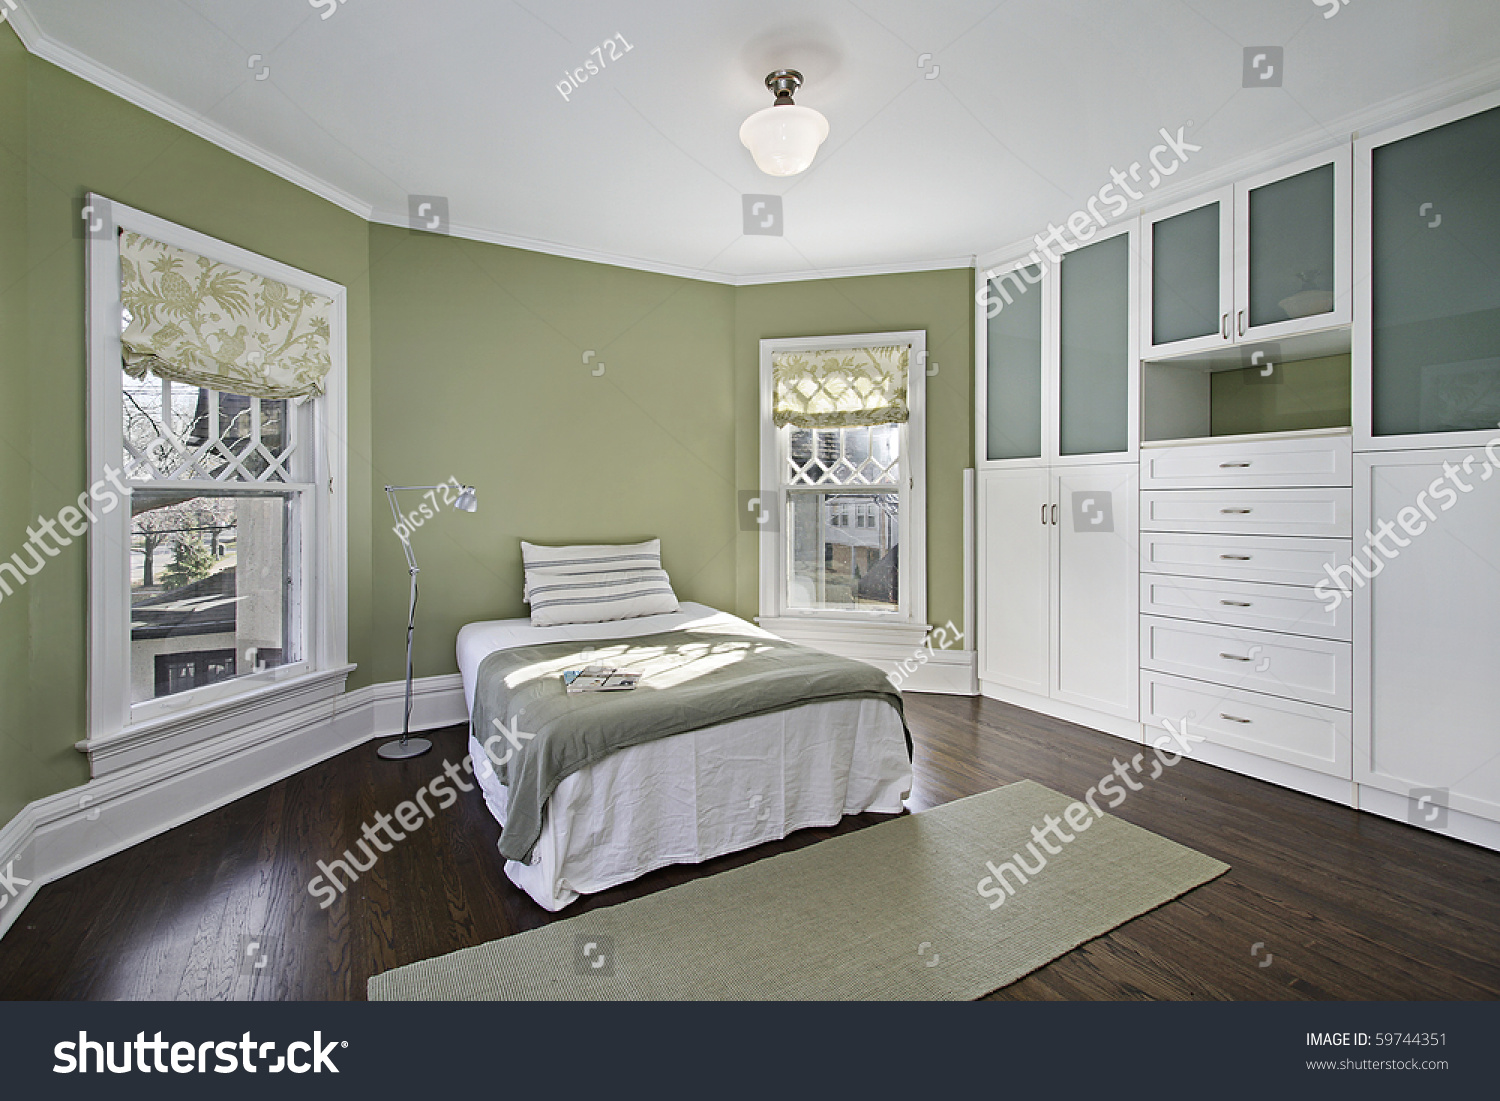 Master bedroom green walls dark wood stock photo 59744351 Master bedroom ideas green walls